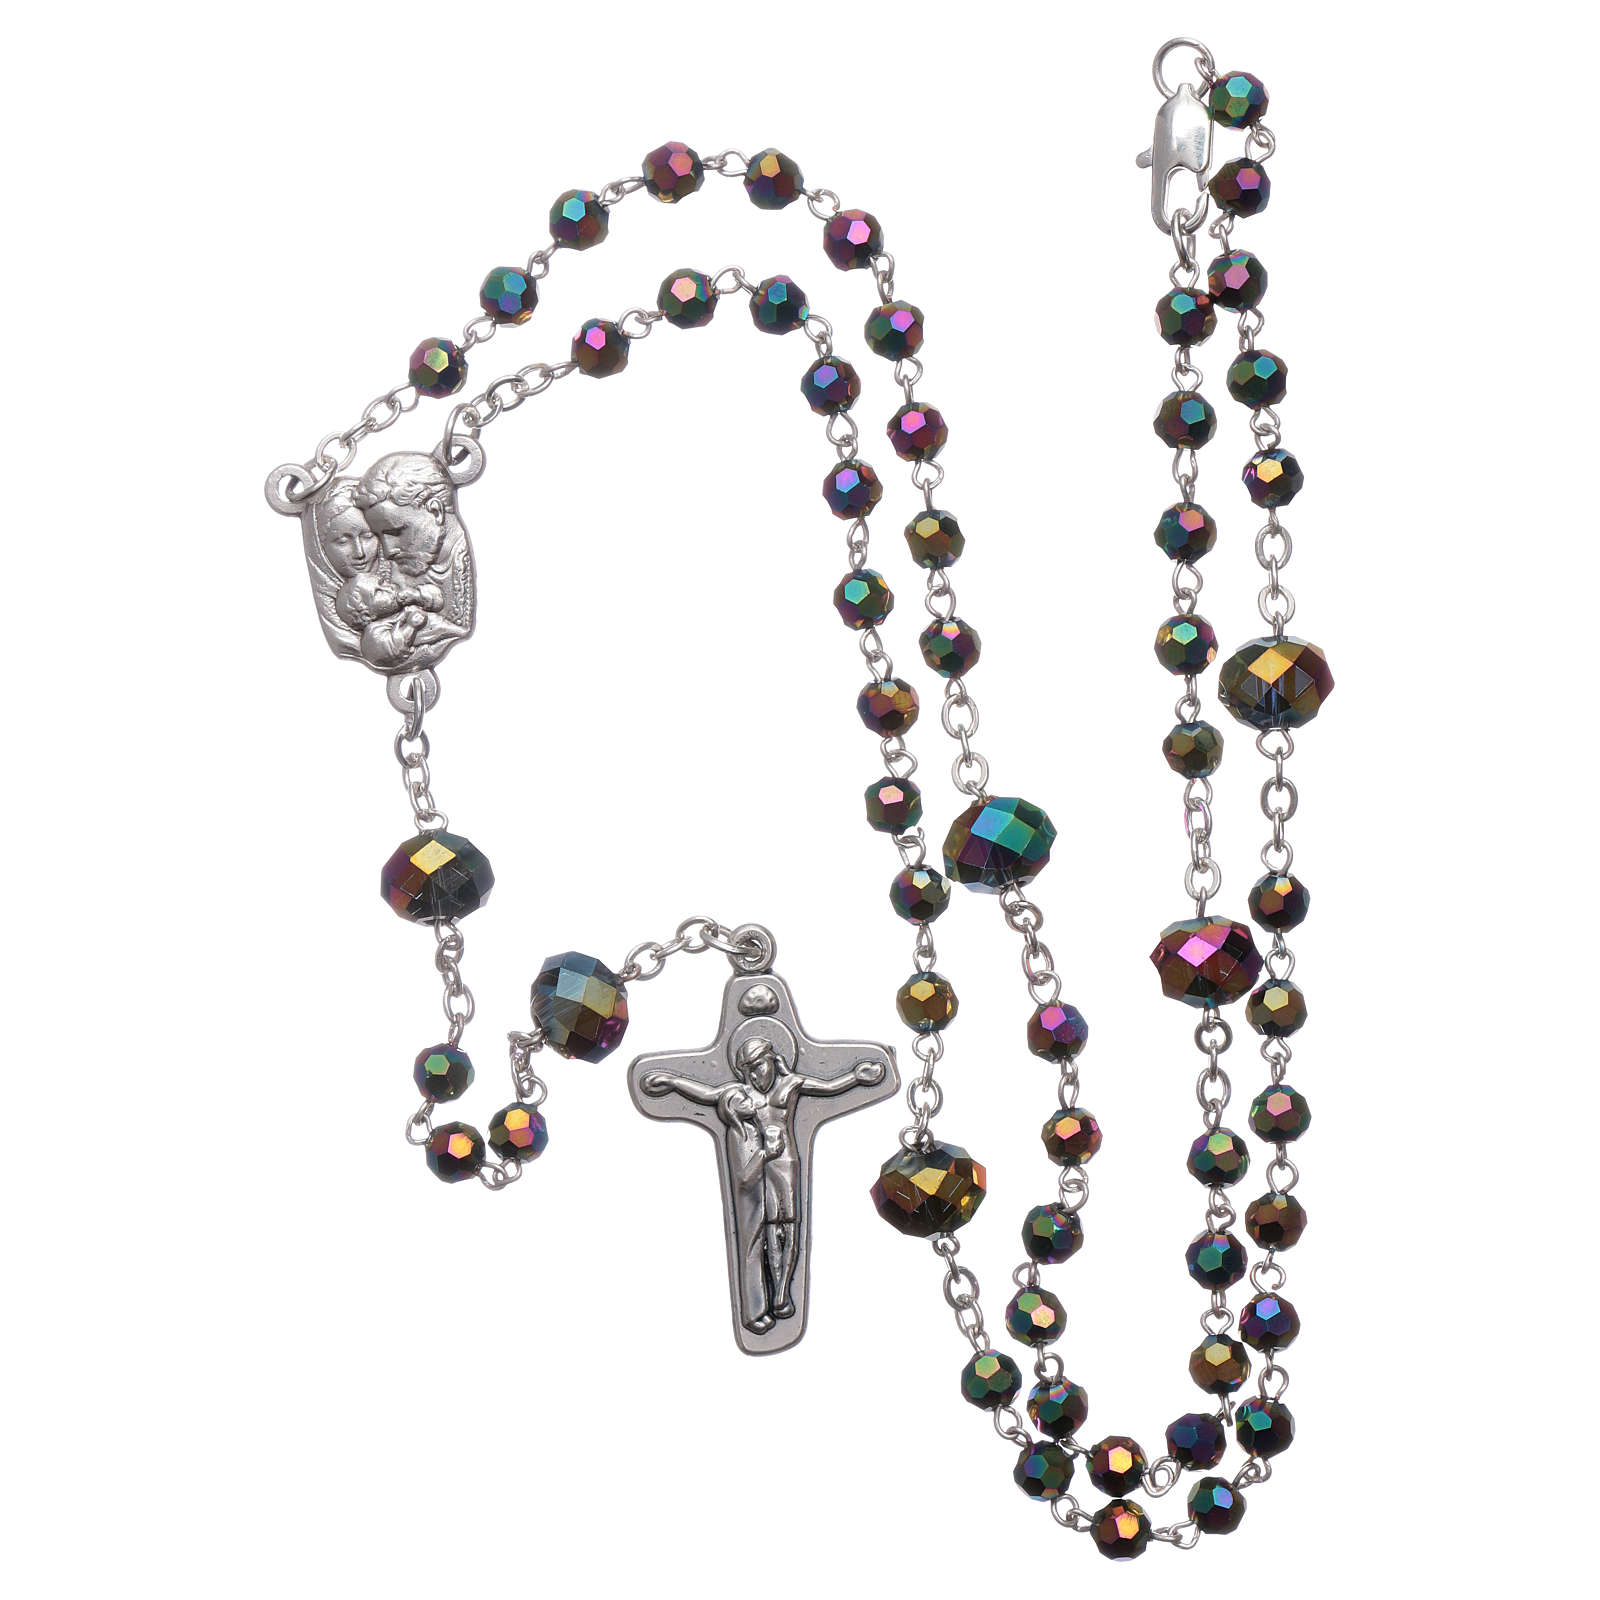 Medjugorje rosary necklace in iridescent crystal 4 mm 4